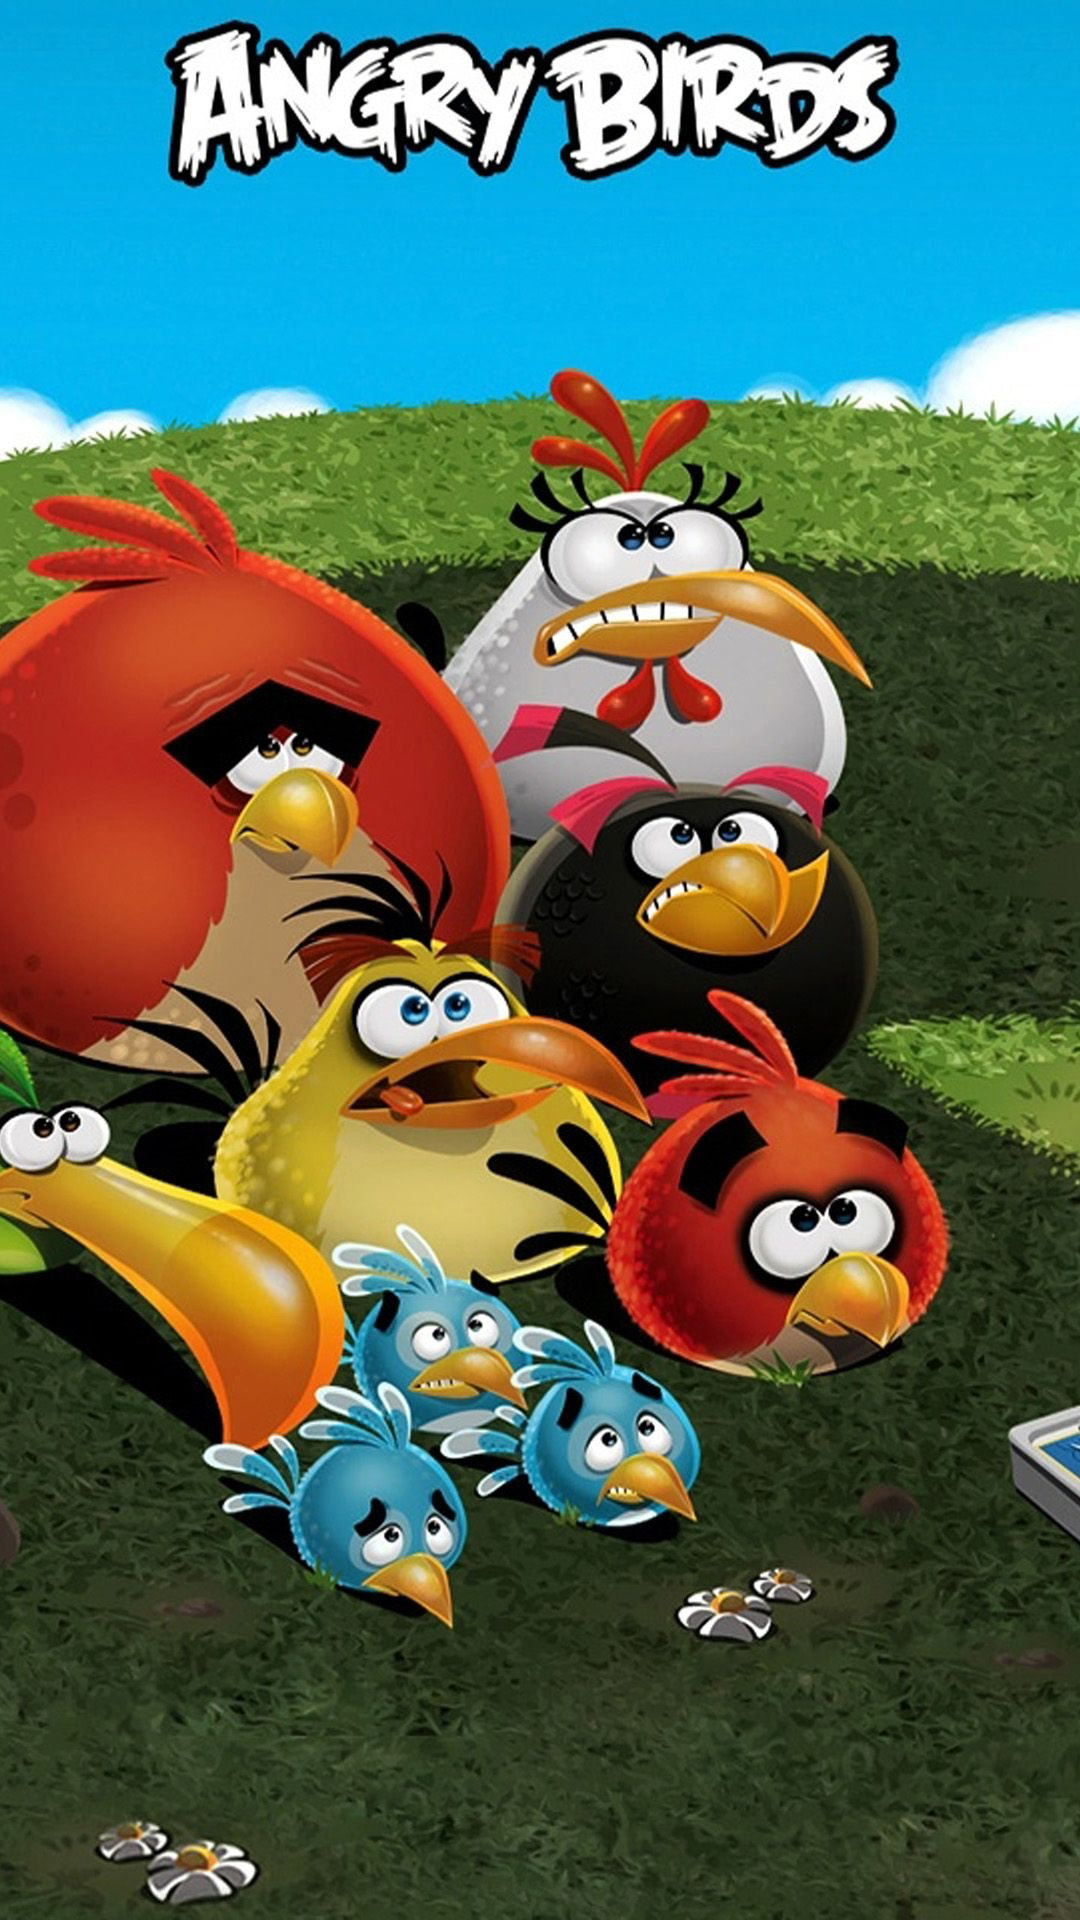 iphone 6 plus angry birds 08 hd wallpaper | the angry birds movie